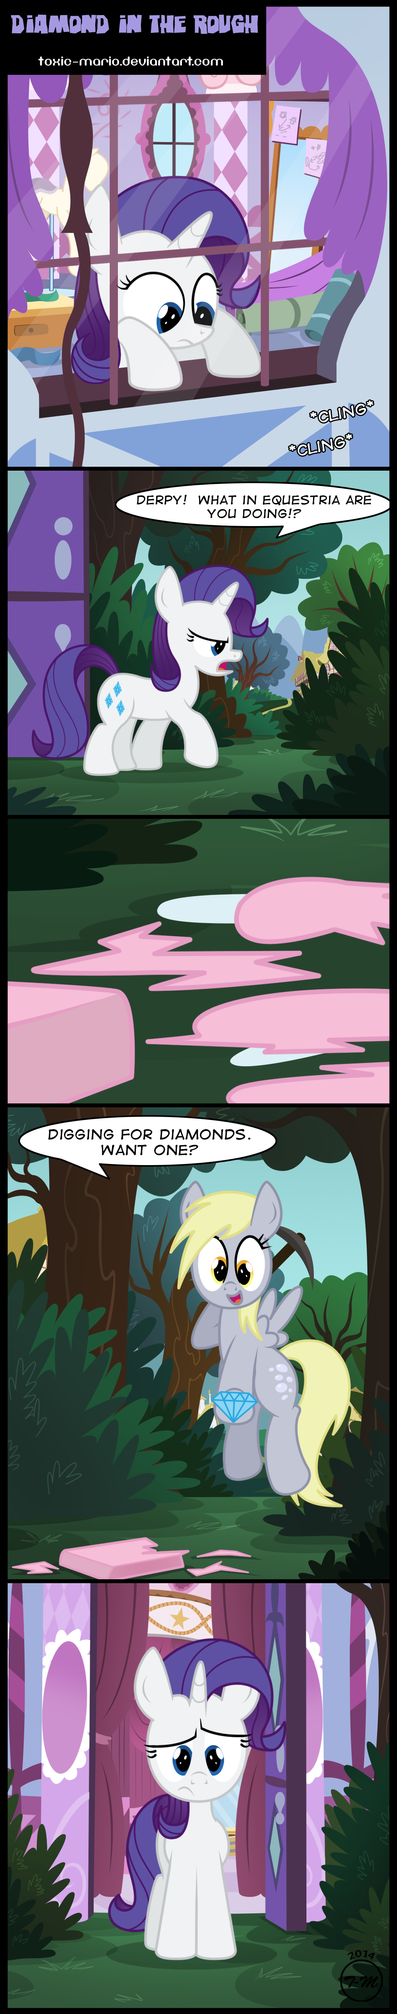 Diamond in the Rough by Toxic-Mario